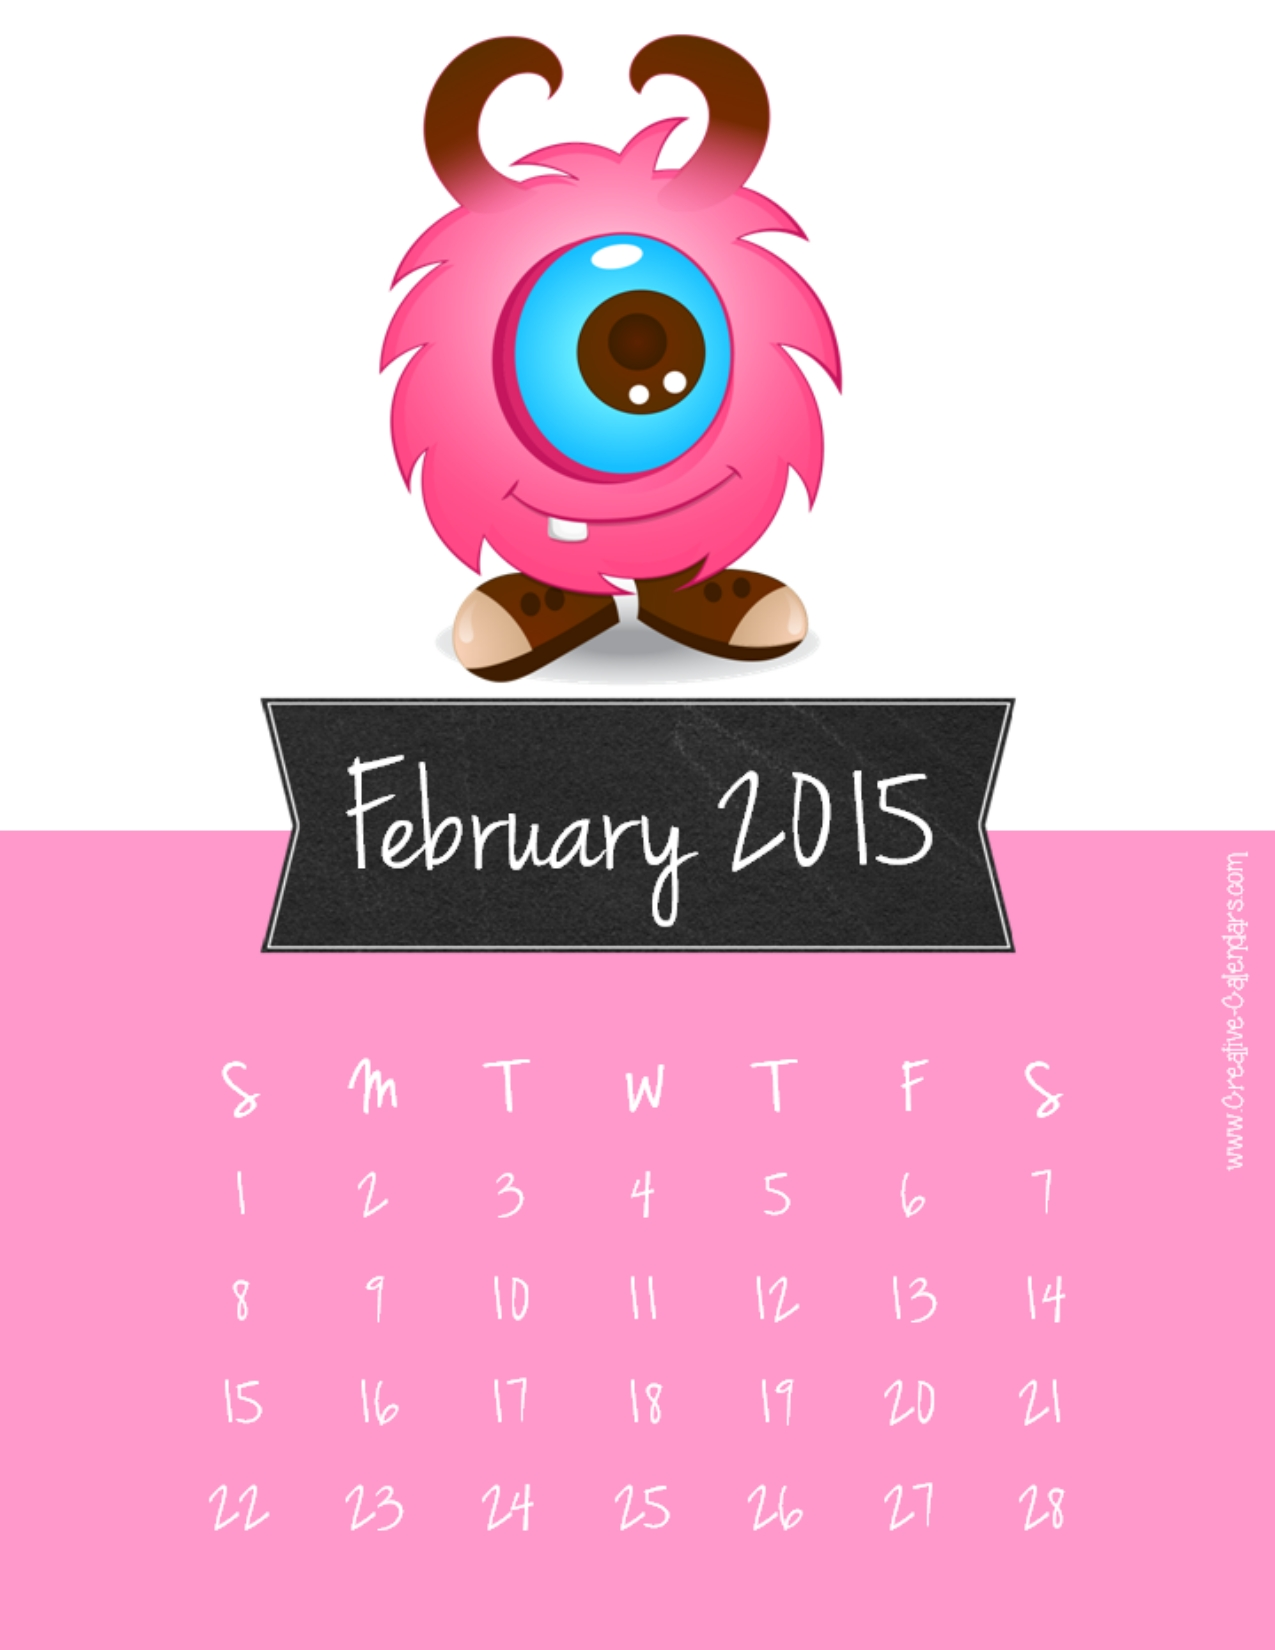 February 2015 printable calendar with a pink background